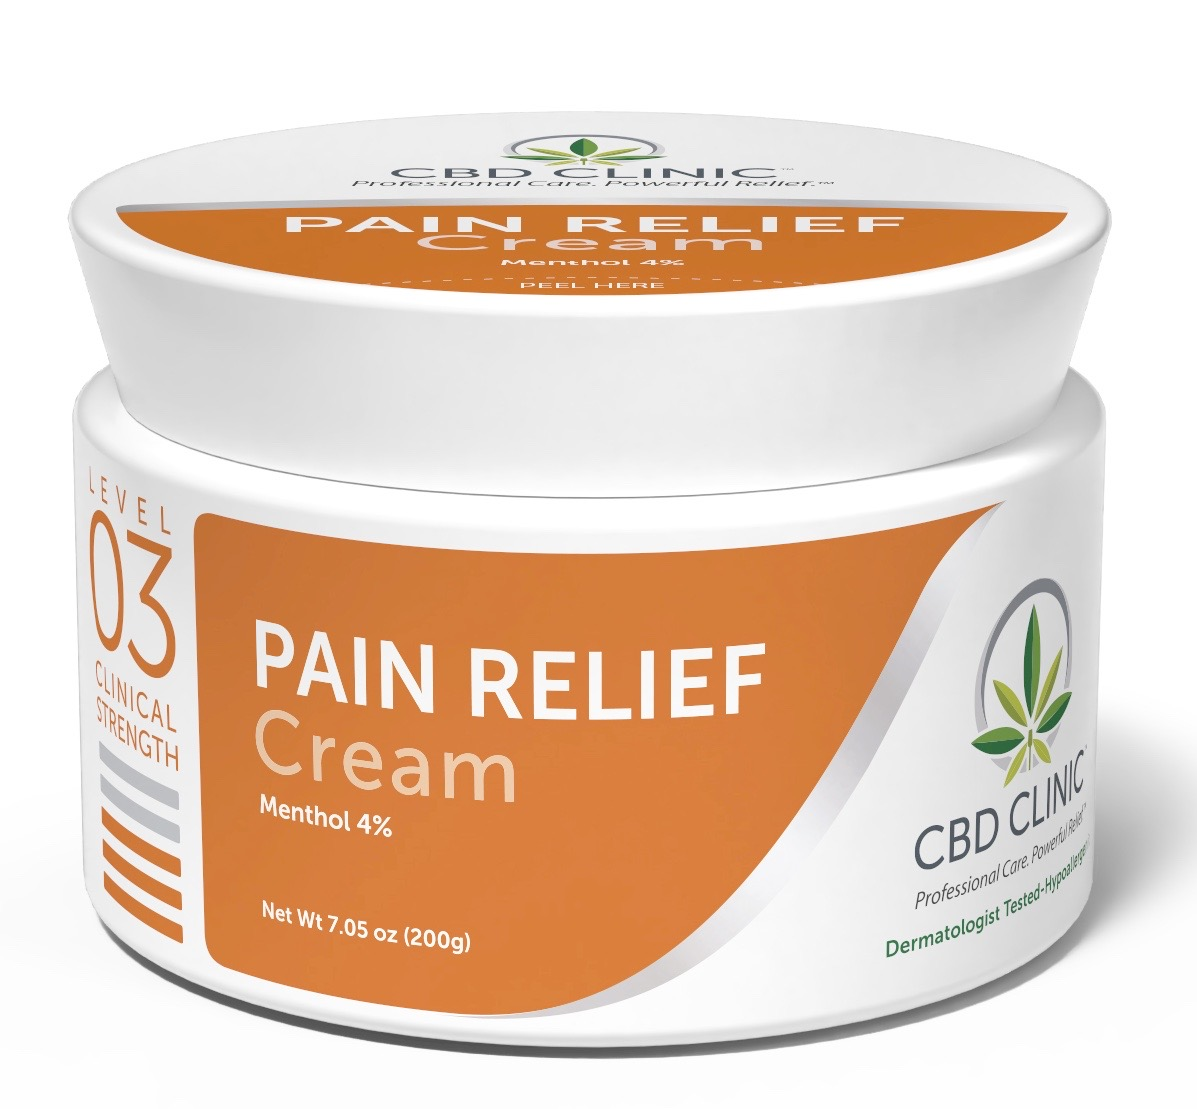 CBD Clinical Strength Pain Relief Cream- Level 3